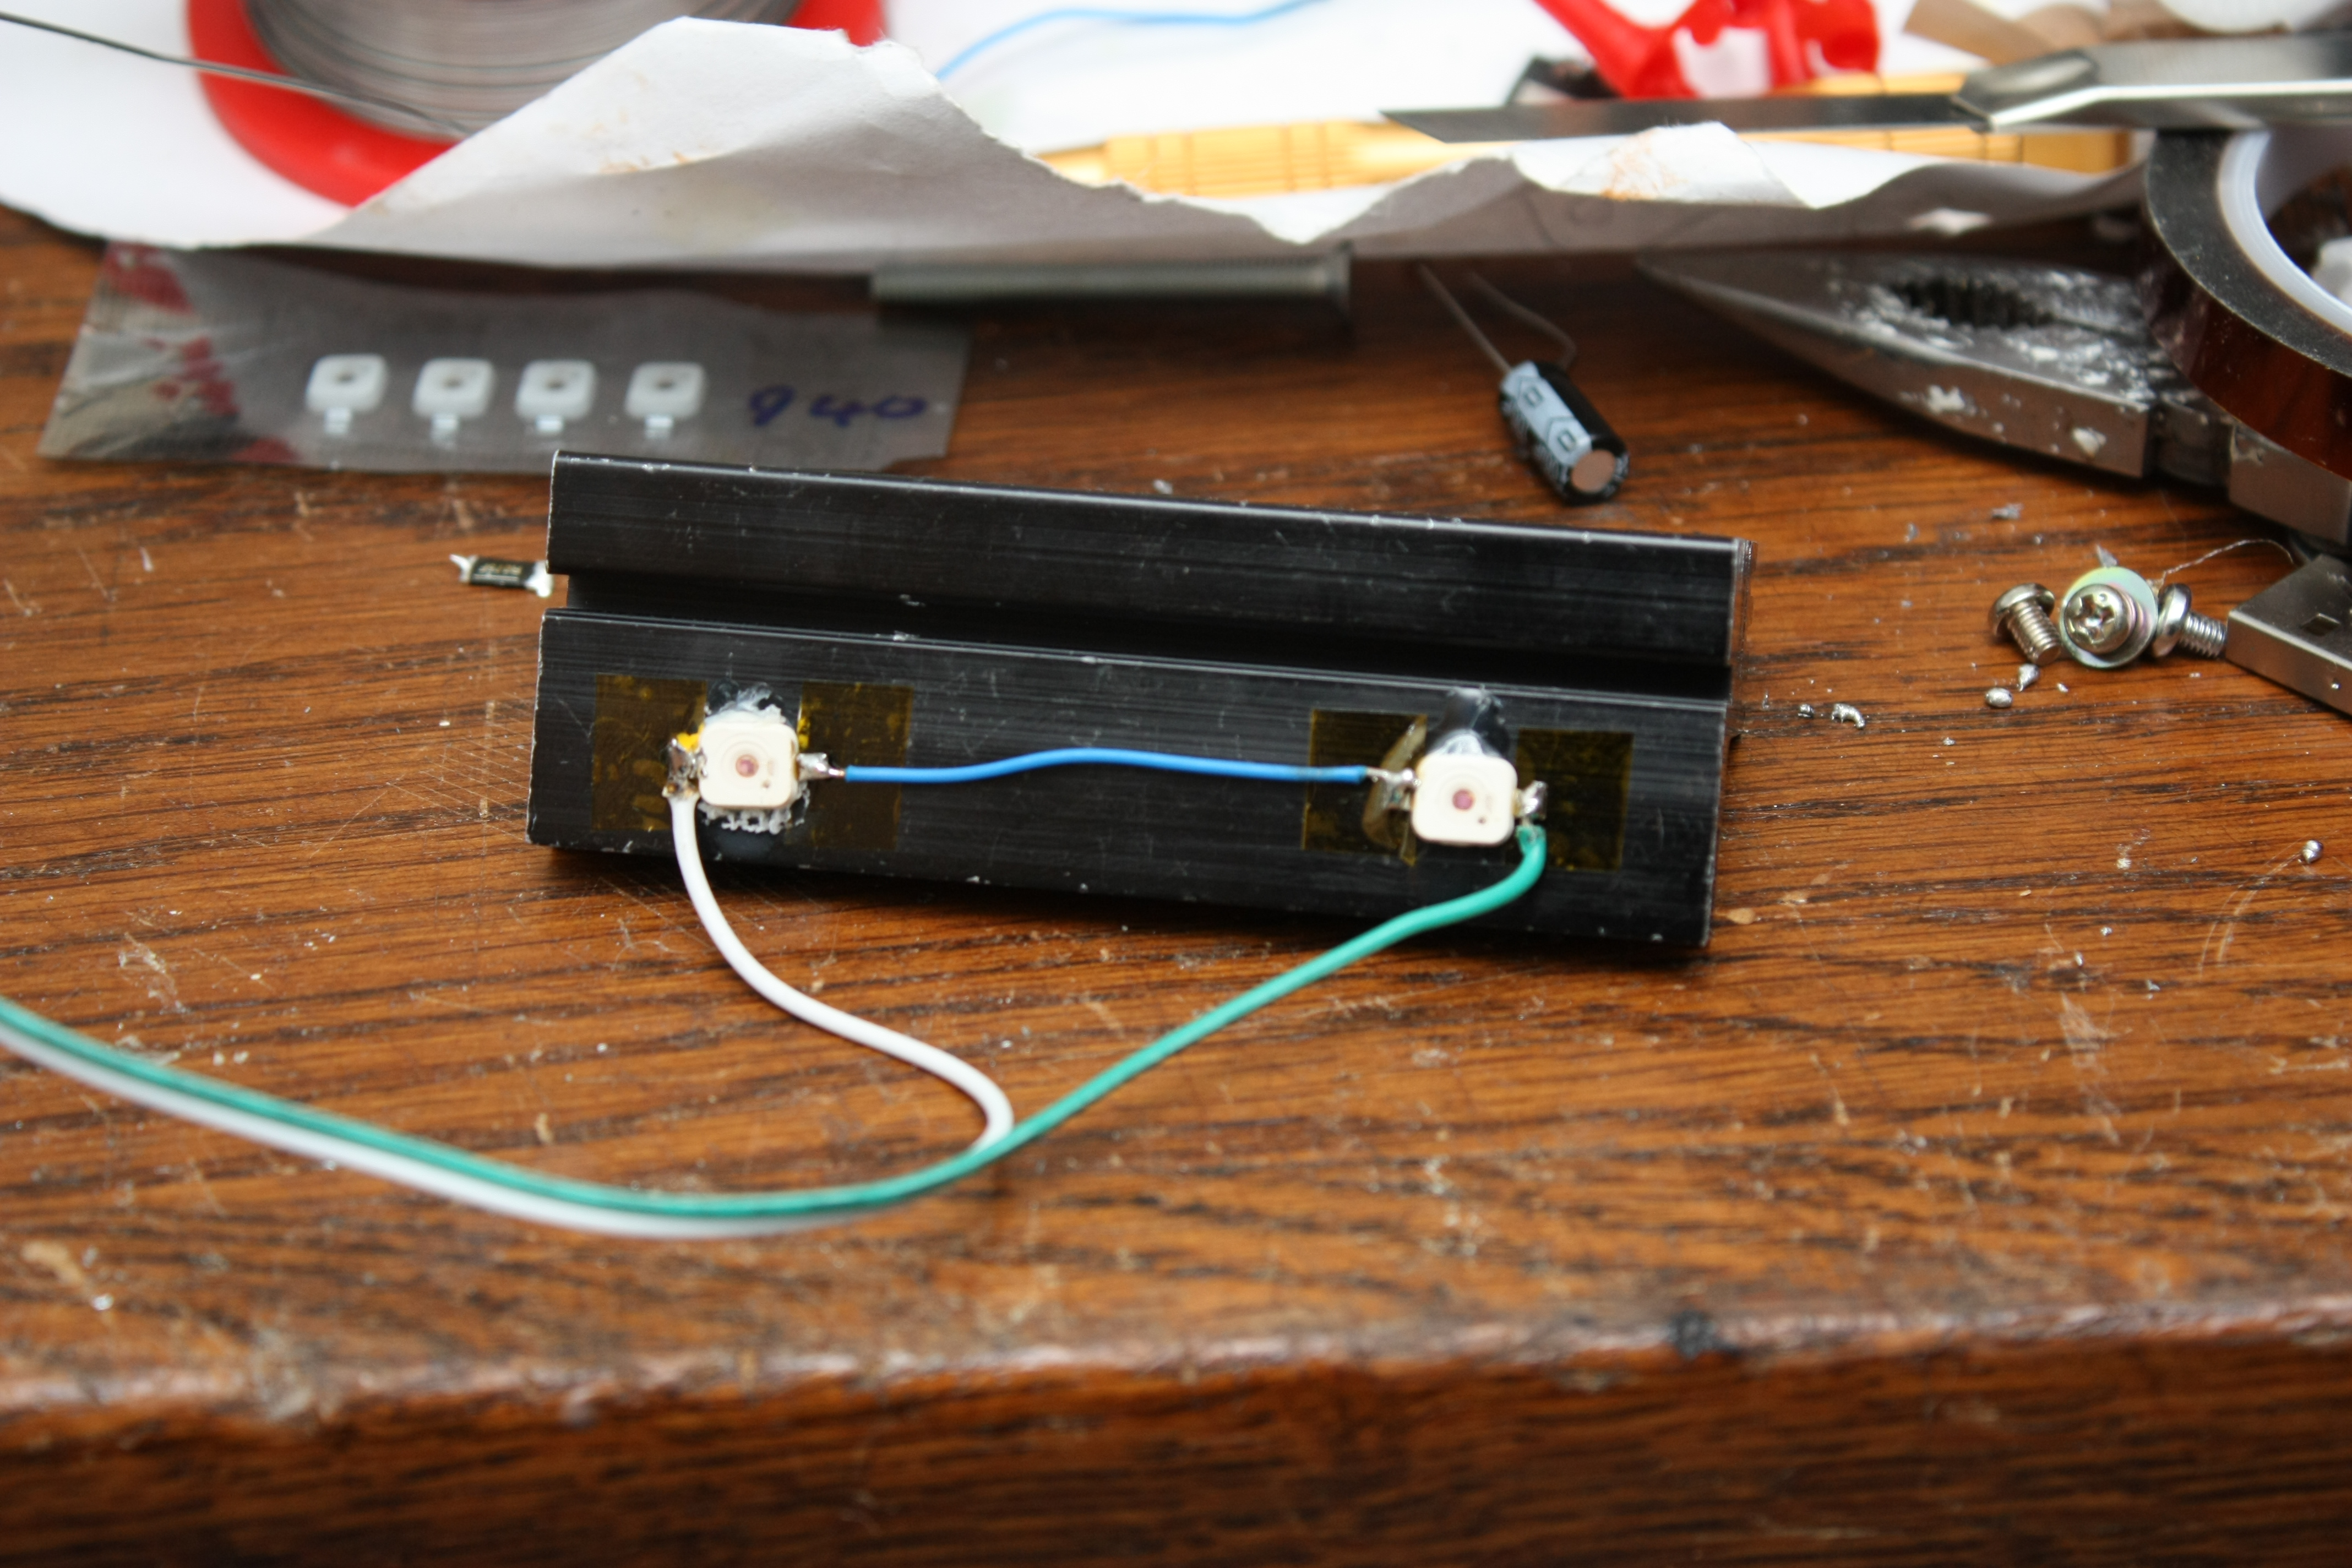 Sprites Mods Virtual Wii Sensor Bar Implementation Component Cable Schematic Here Are The Ir Transmitters Glued To A Nice Big Heat Sink Theyre Actually On At Full Power But Thanks Good Filters In My Camera All You